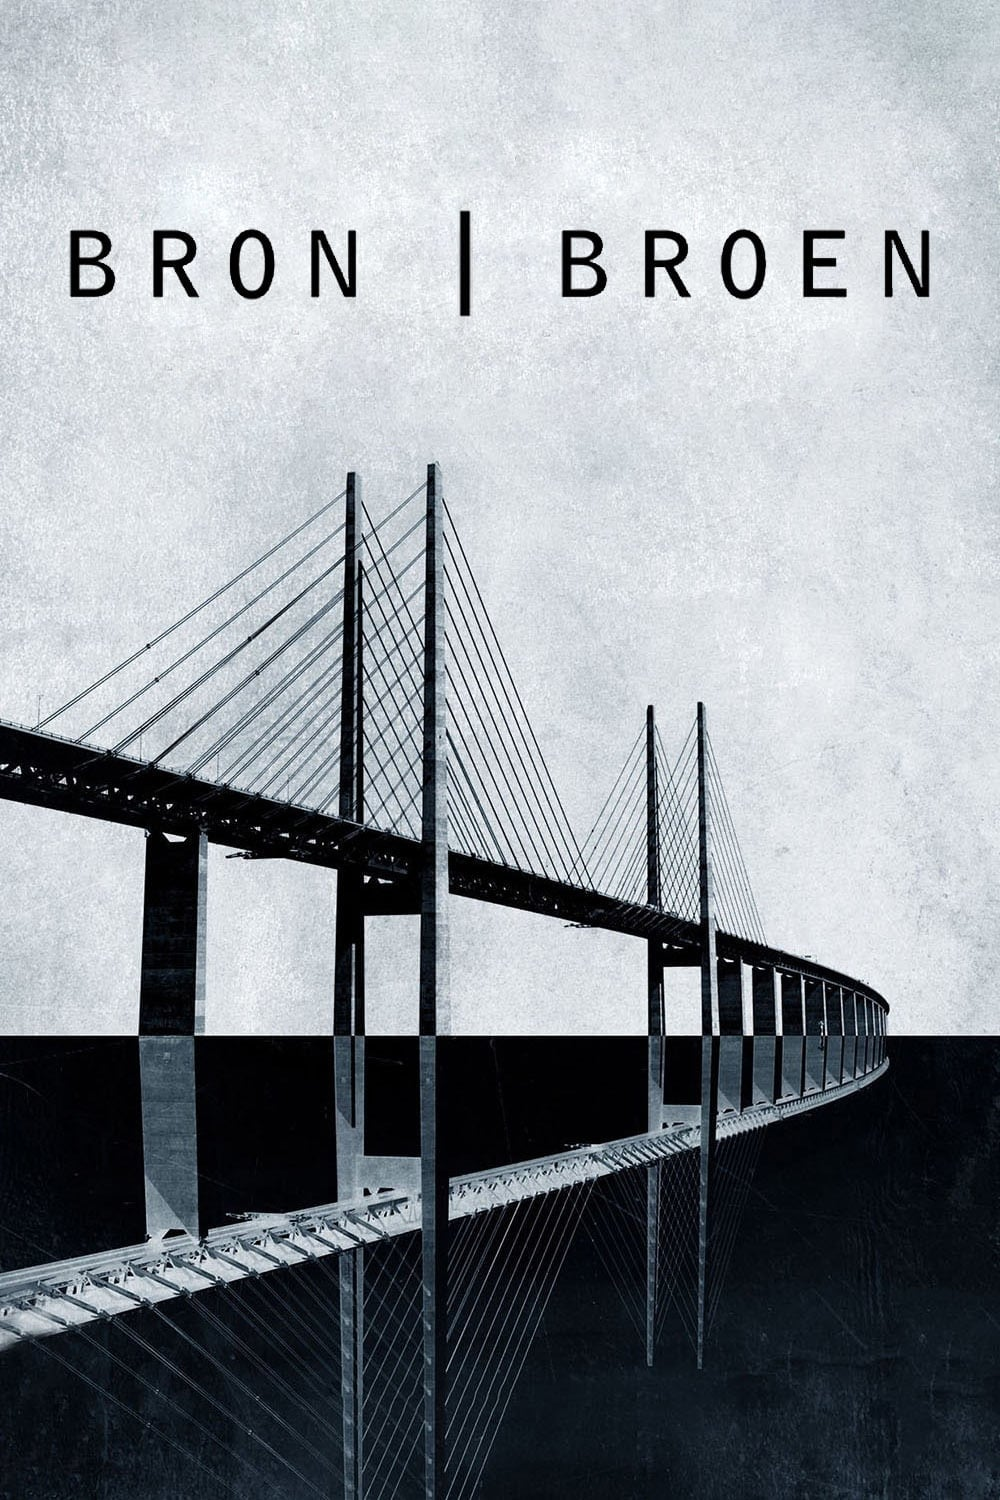 The Bridge-Bron series tv complet